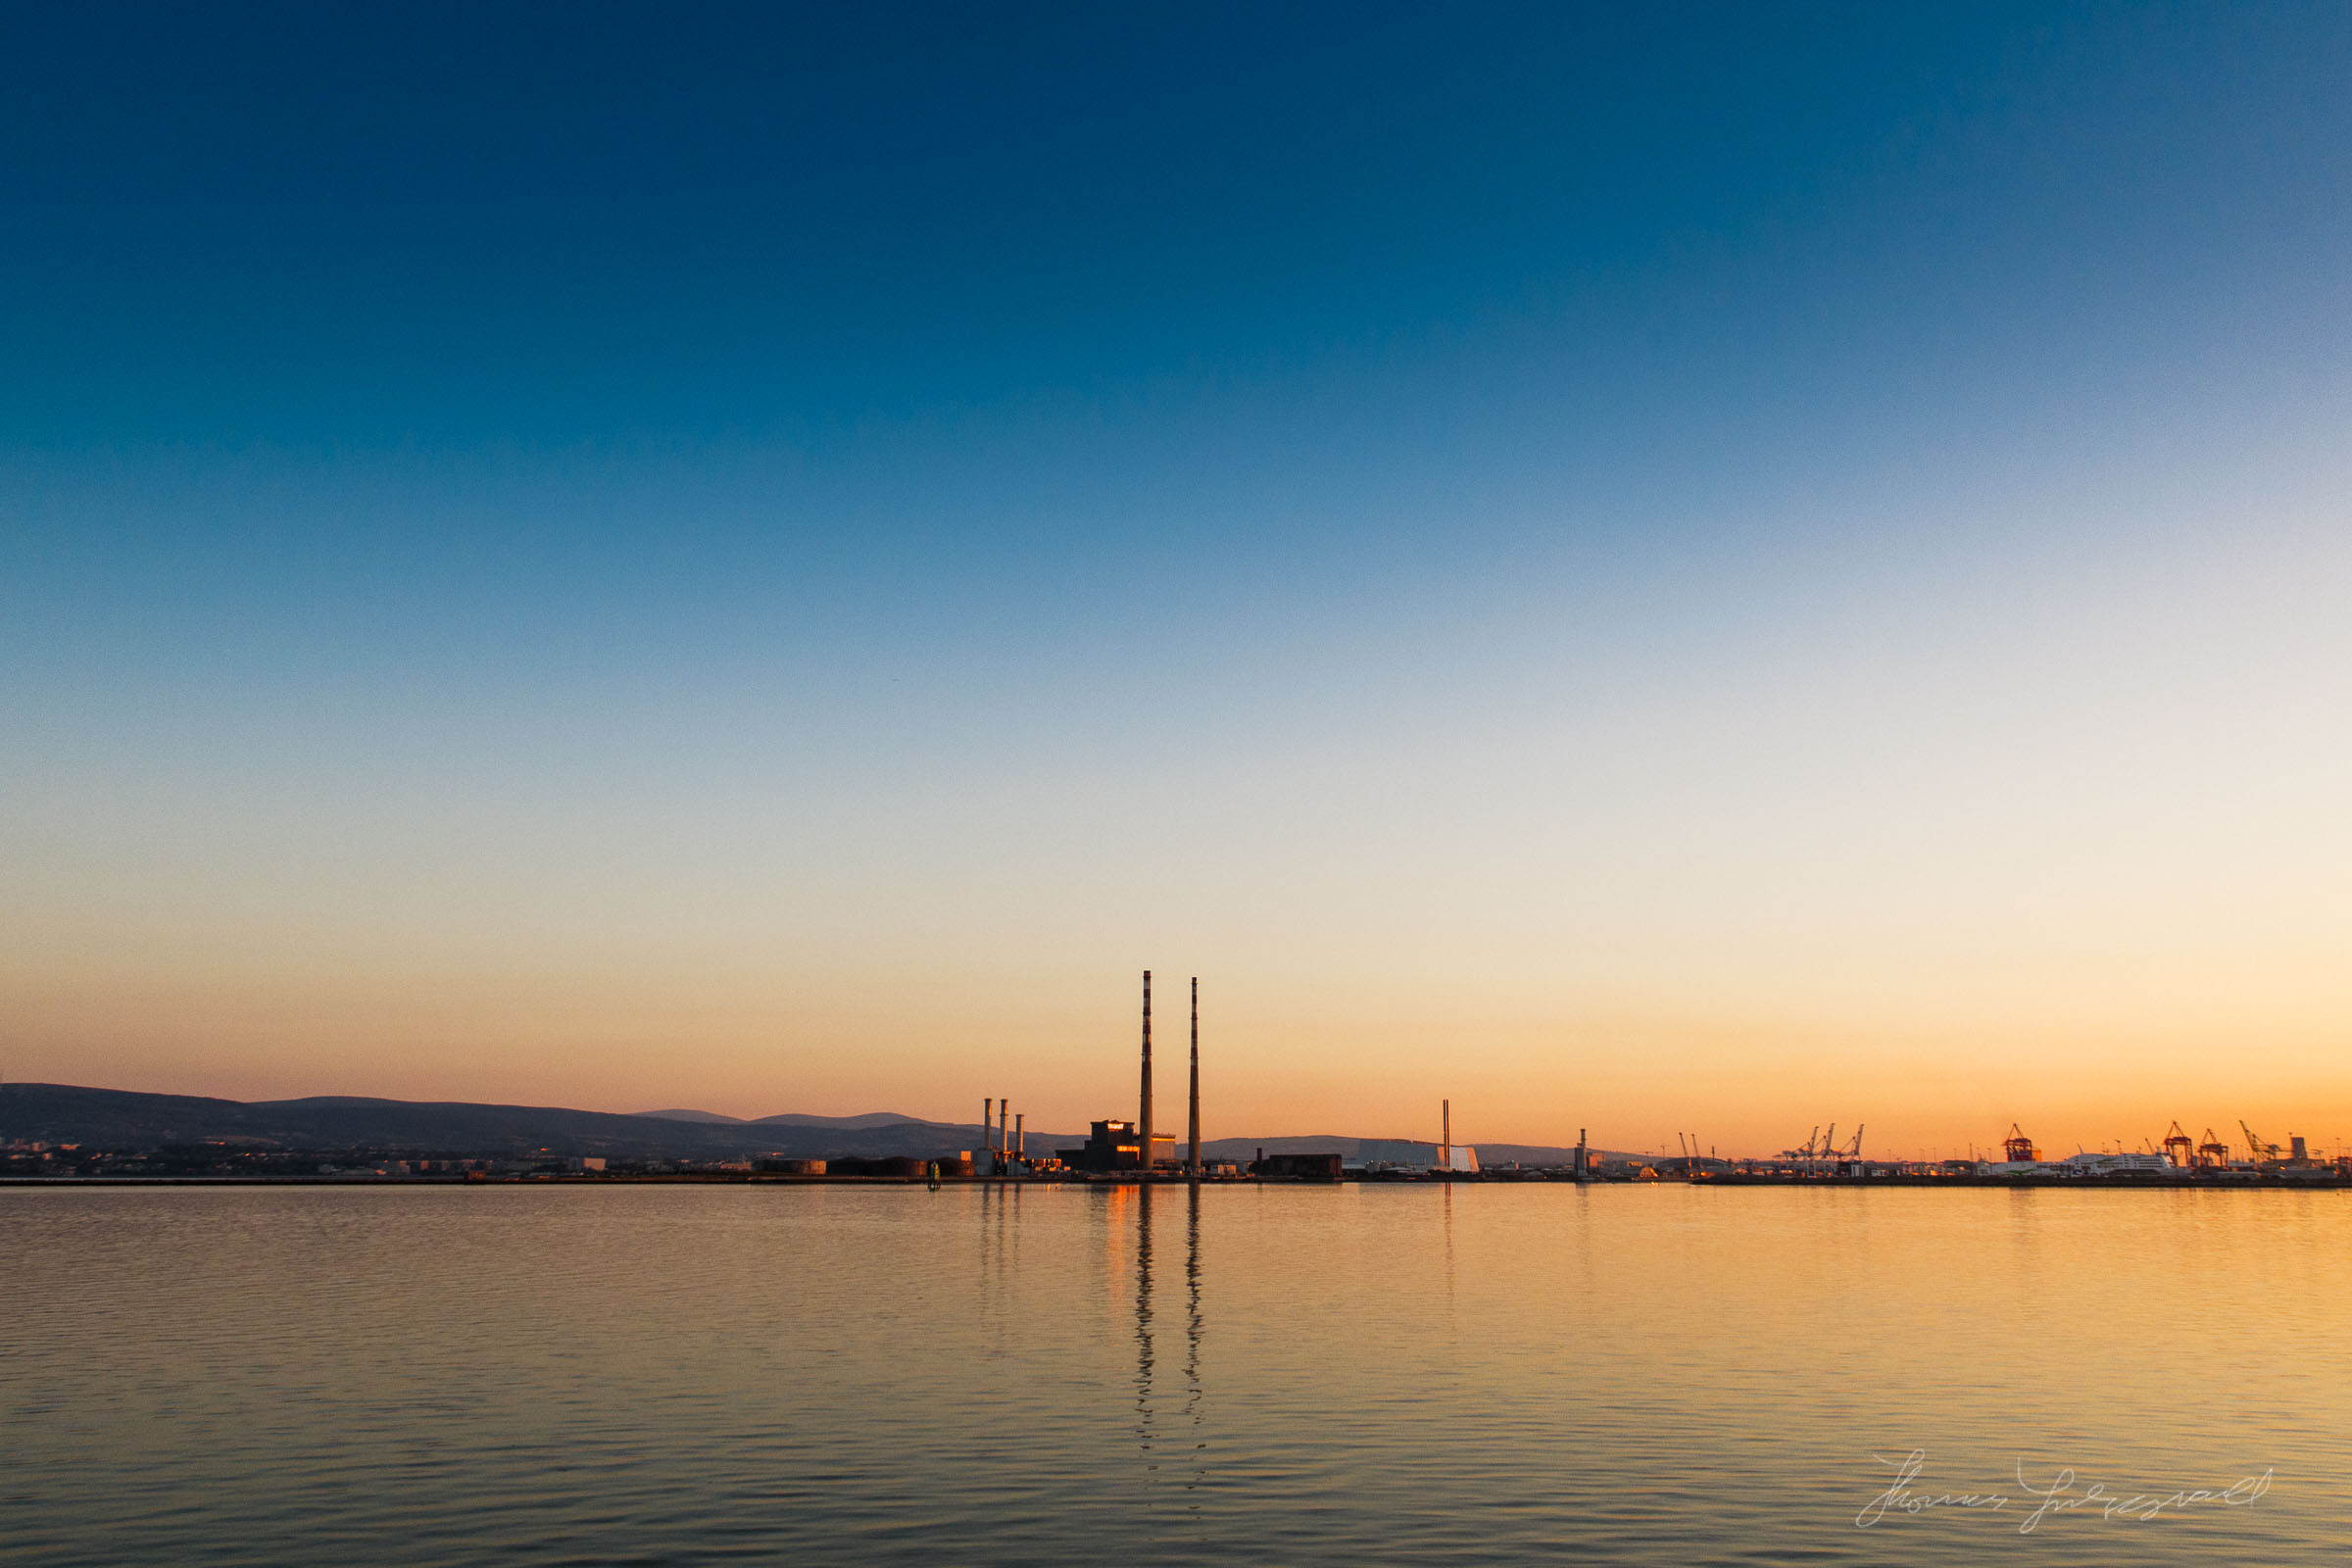 Sunset over Dublin's iconic Poolbeg Towers